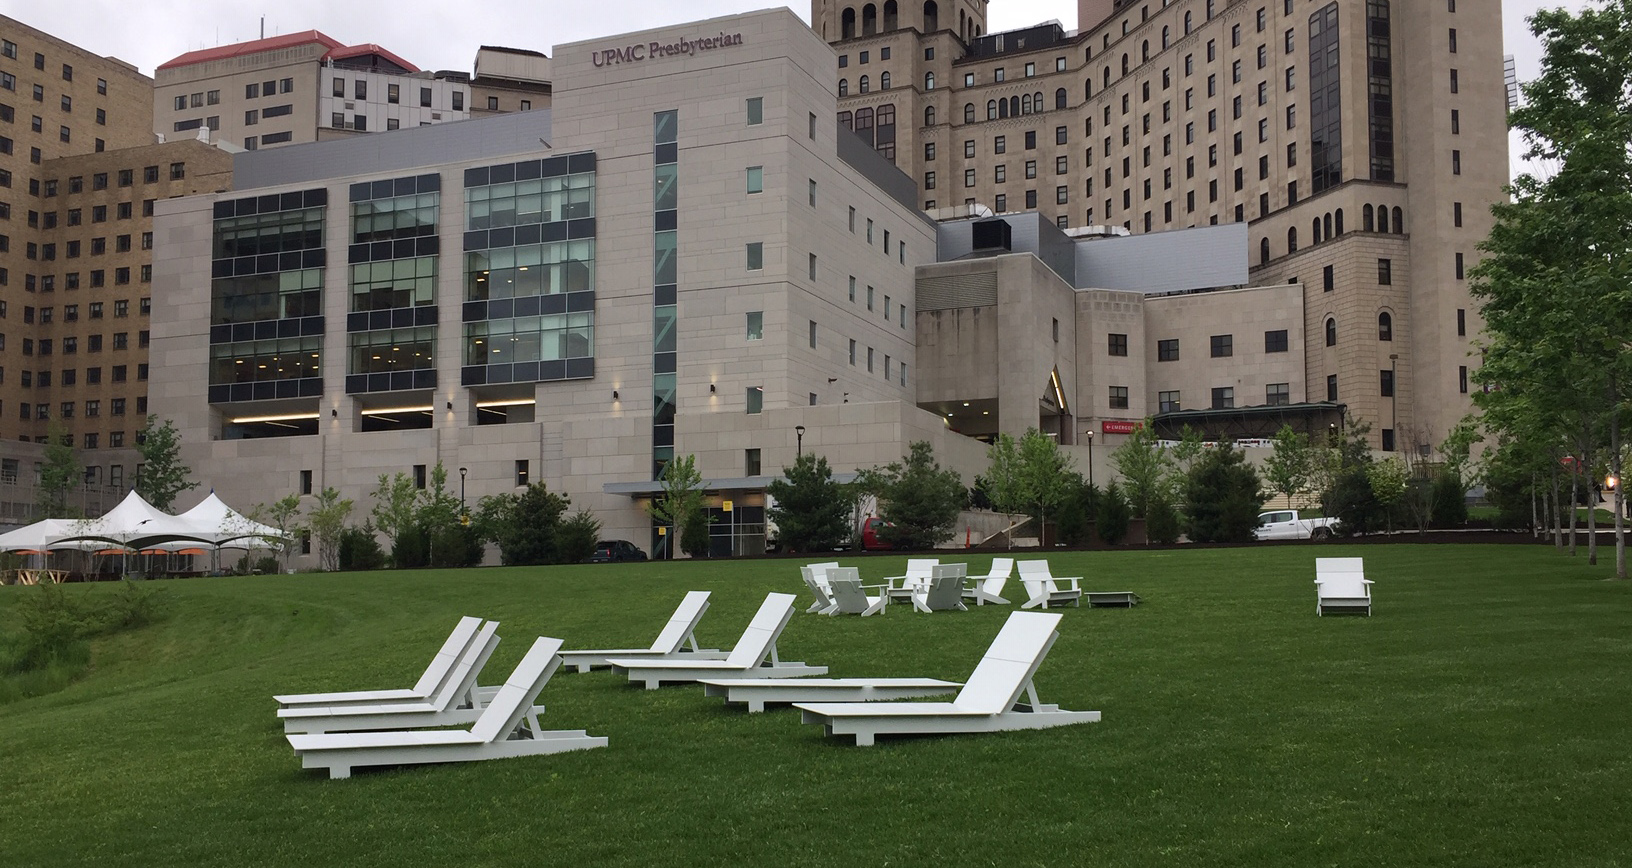 Chairs outside UPMC Presby